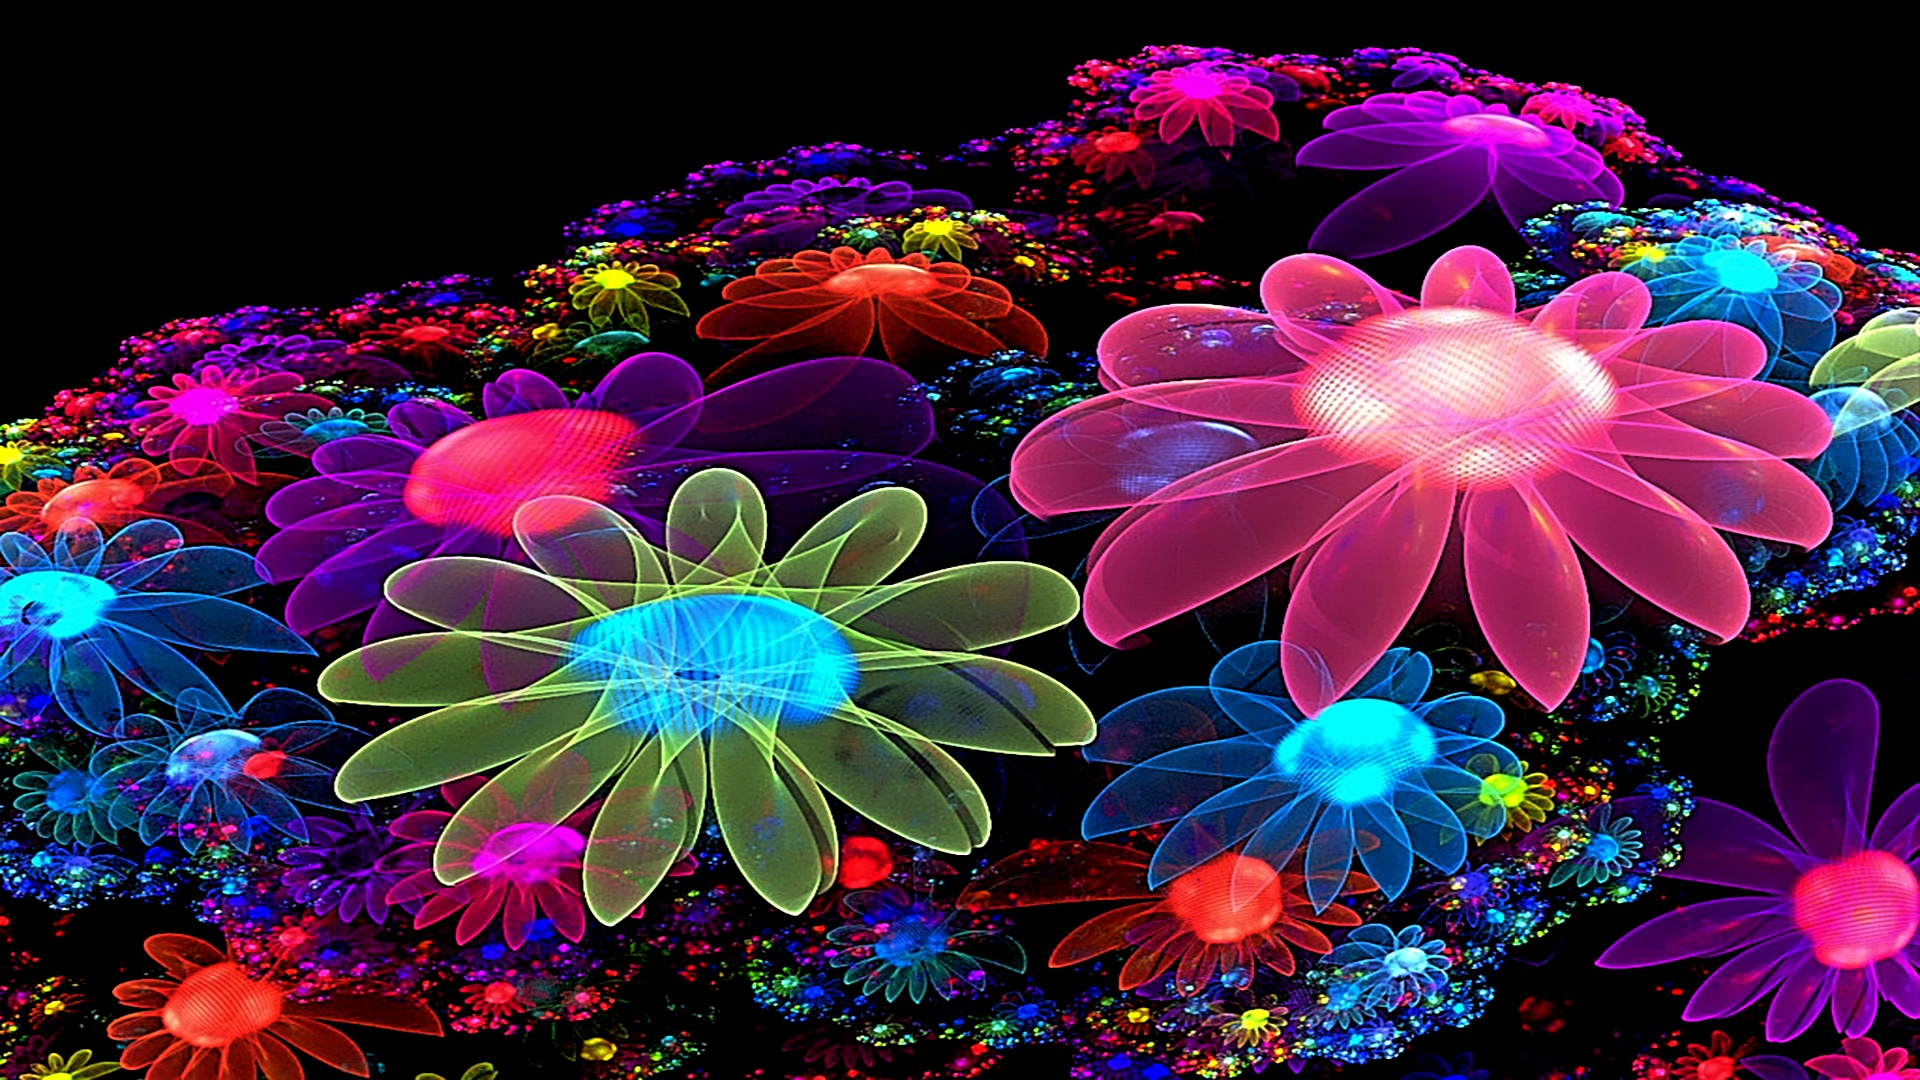 Cool Colorful Wallpaper Backgrounds - WallpaperSafari - photo#20